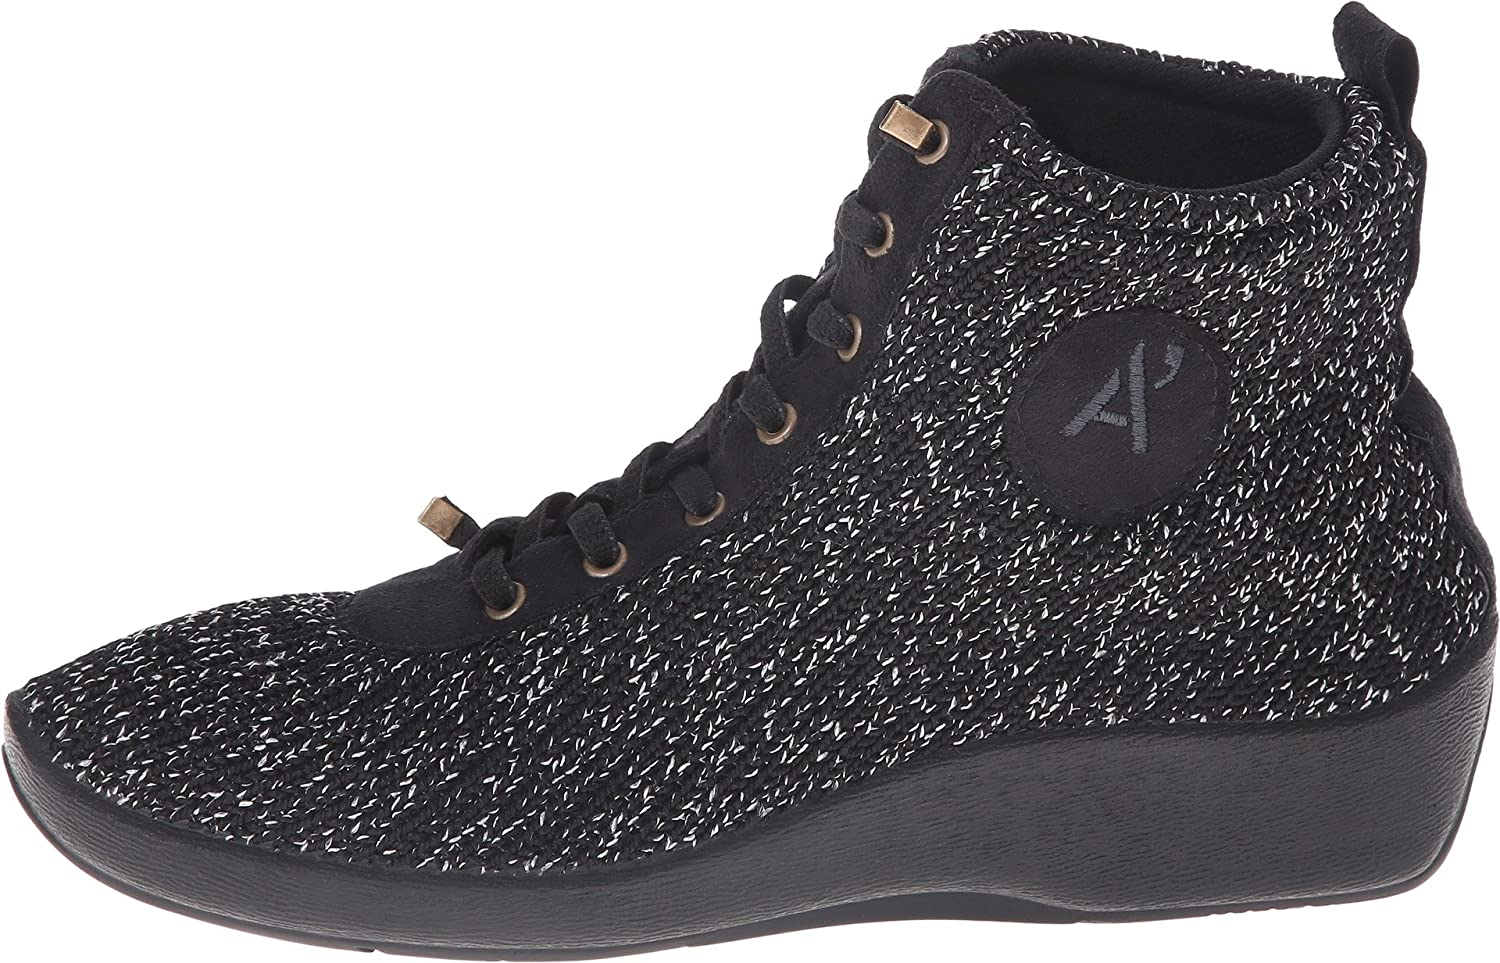 Kalso Earth Shoes Penchant EU Too B00VWRO4K2 38 M EU Penchant / 7-7.5 B(M) US|Black Starry Nite 655b20